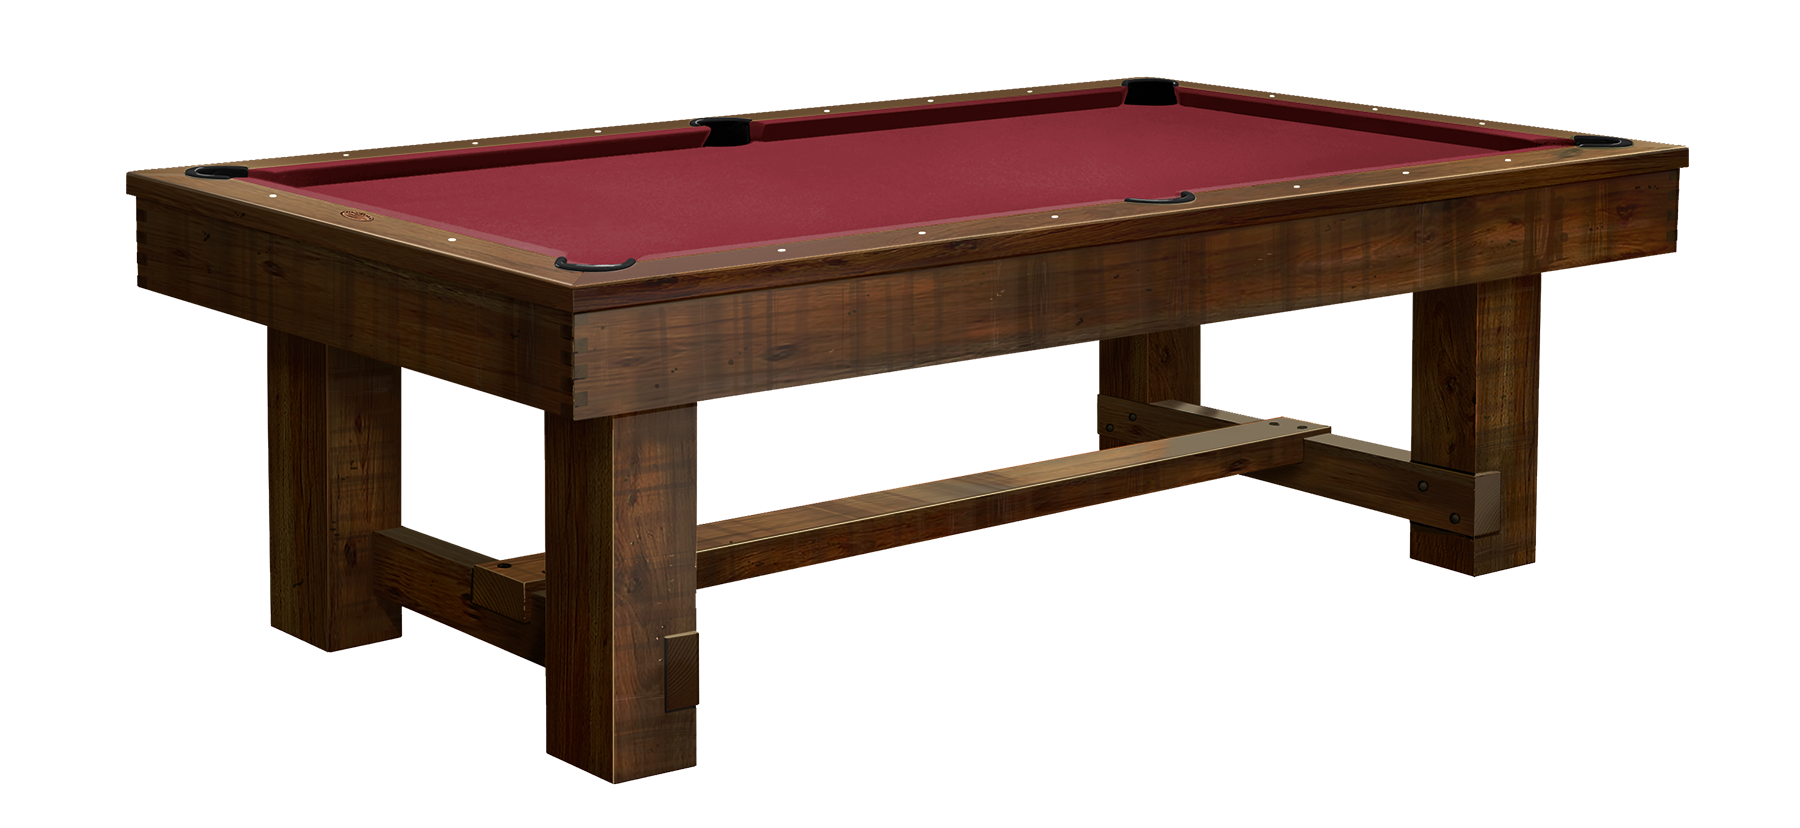 Olhausen Breckenridge Pool Tables & Accessories in Grand Rapids at Emerald Spa and Billiards